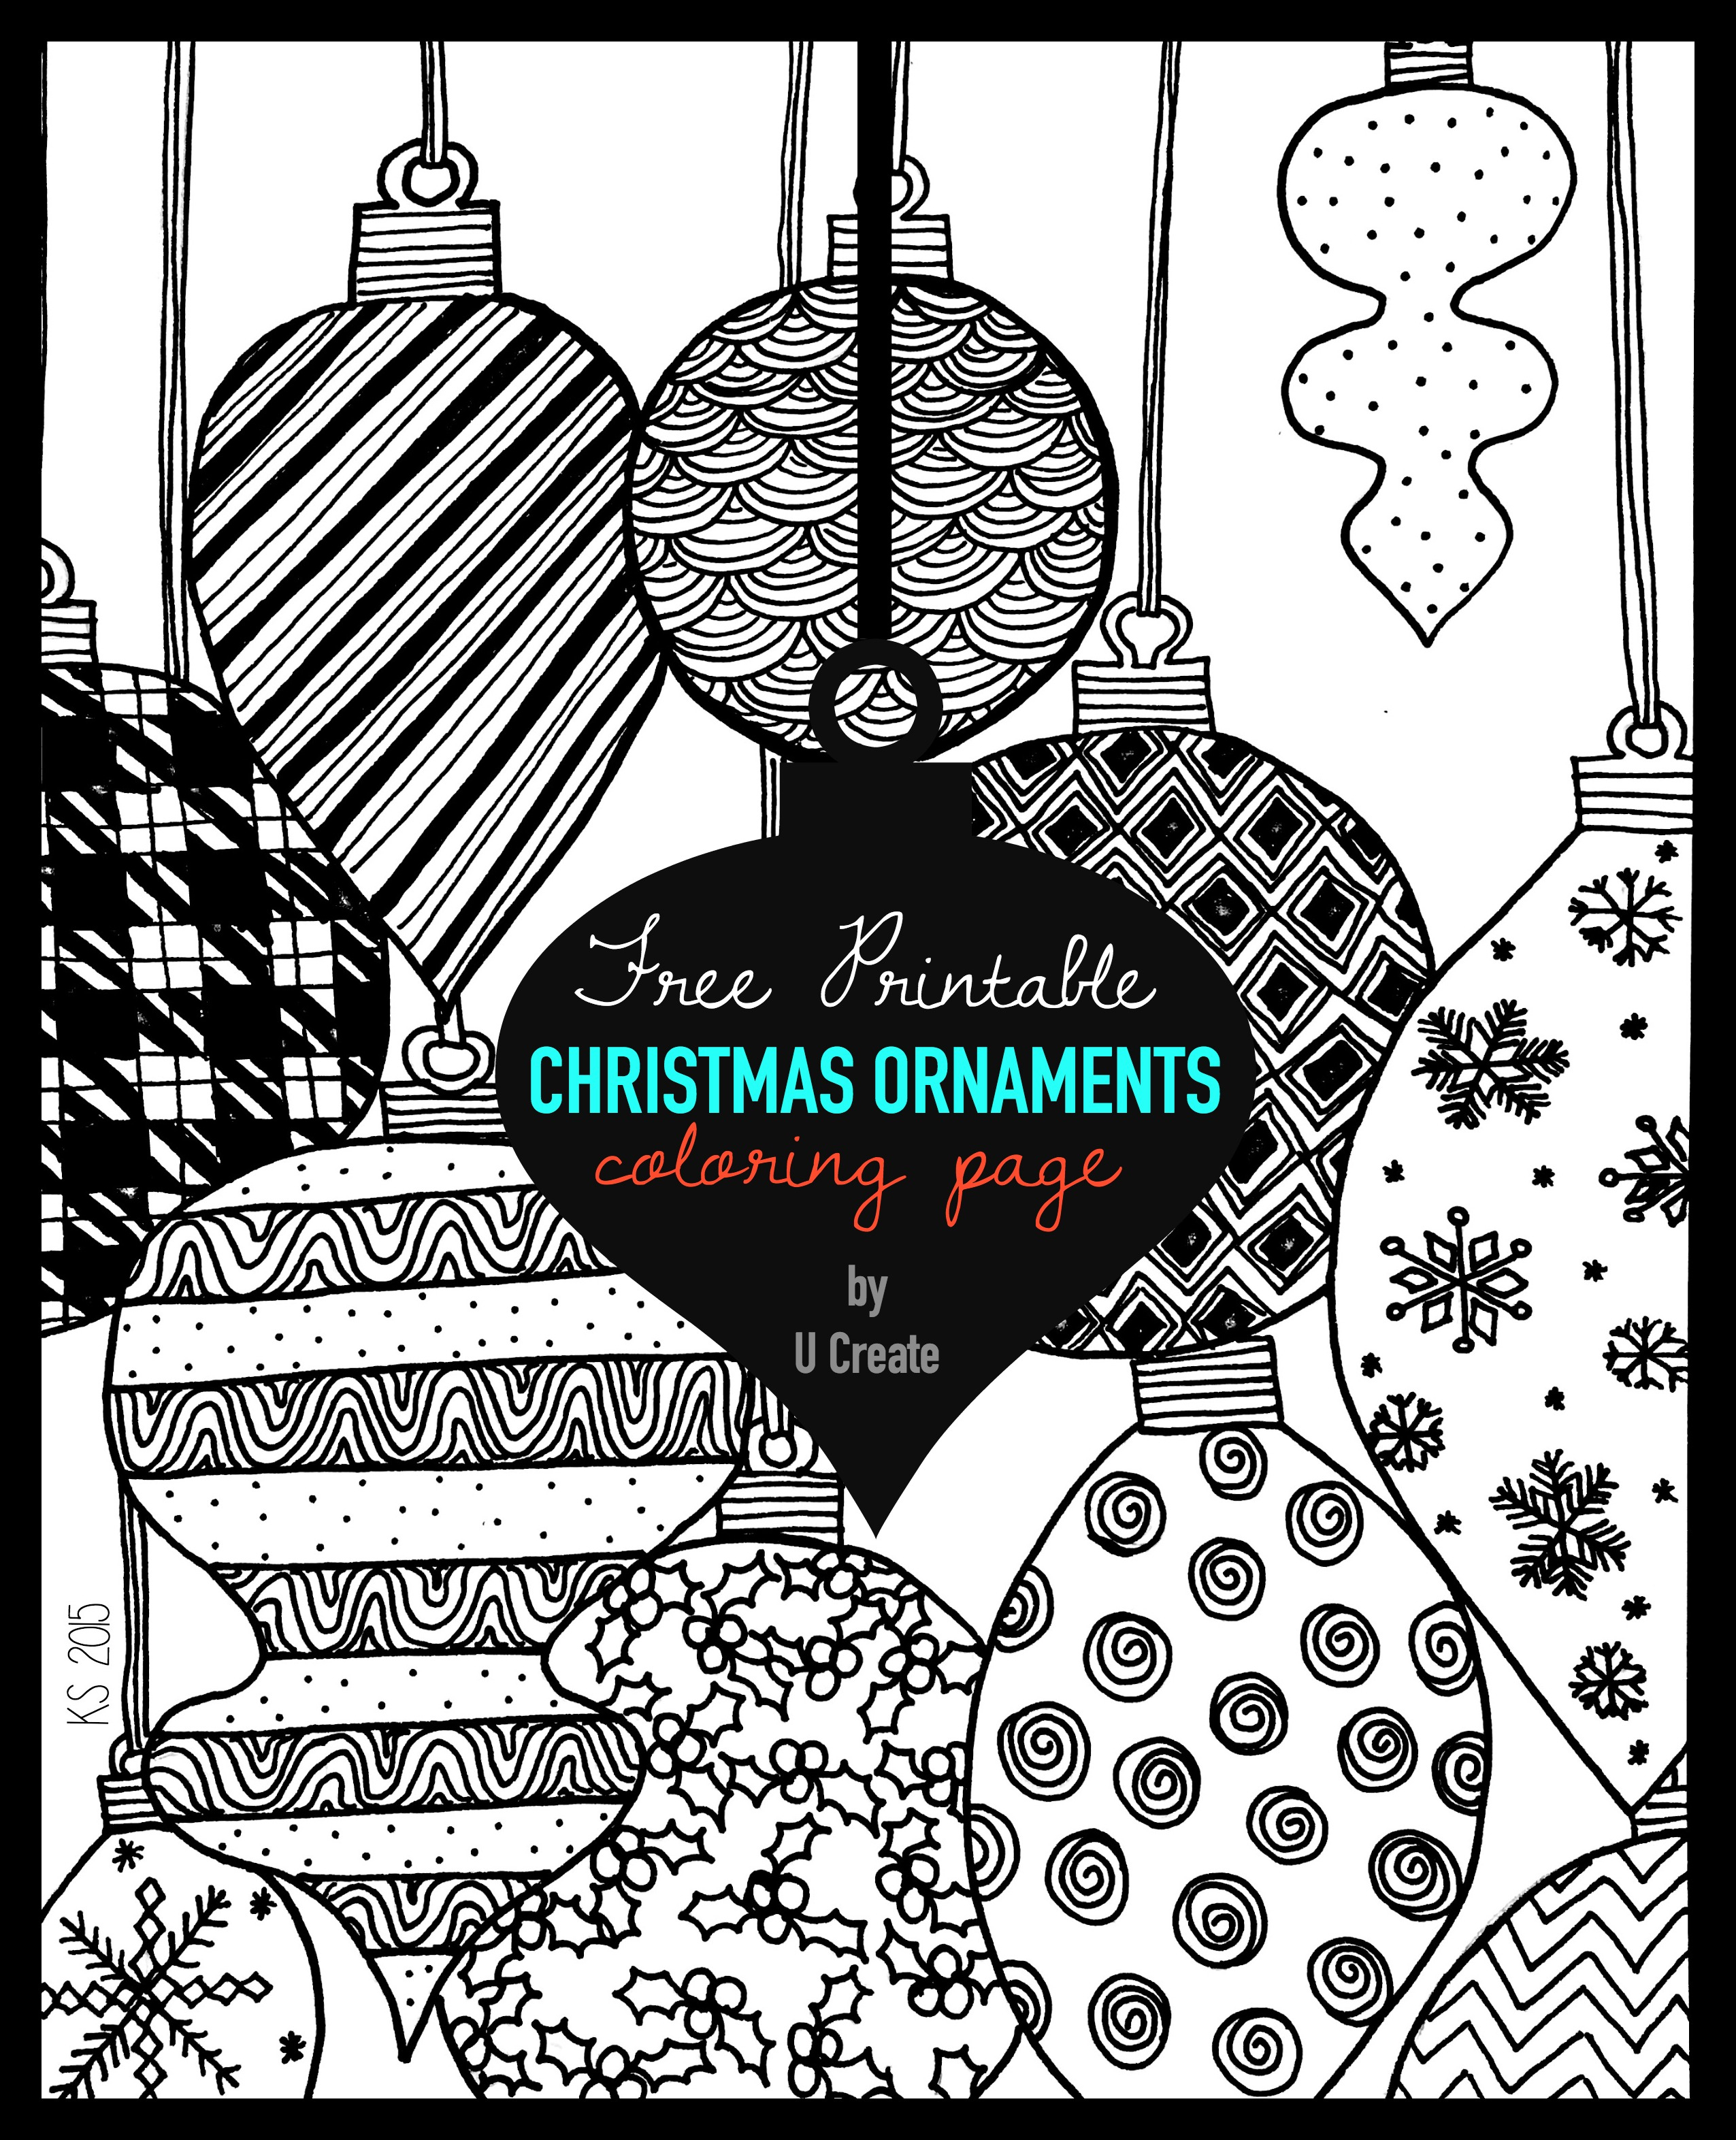 Christmas Ornaments Adult Coloring Page - U Create - Free Printable Ornaments To Color